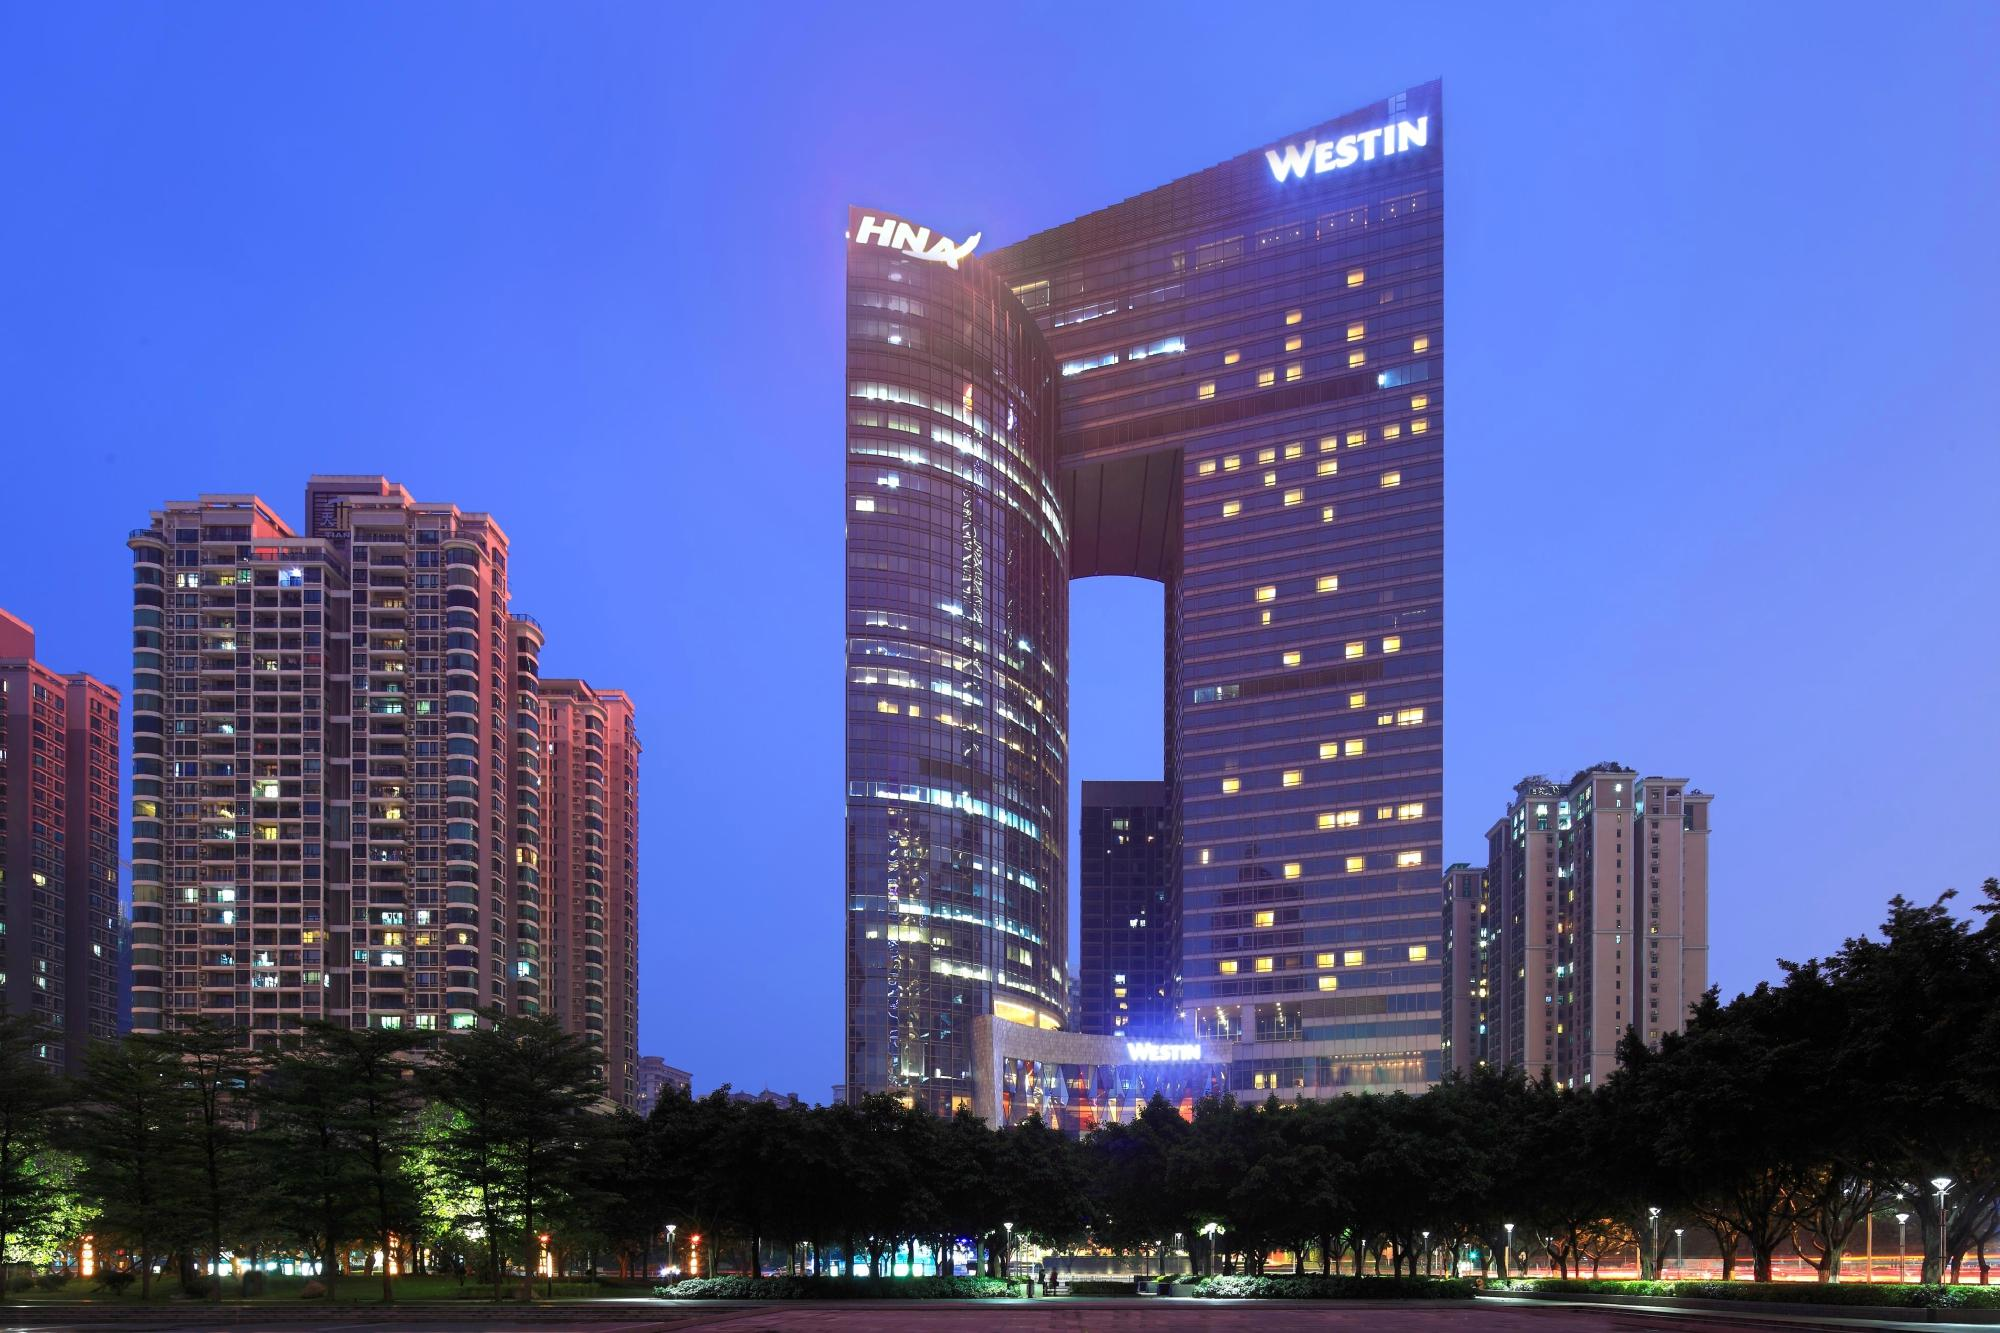 The Westin Guangzhou